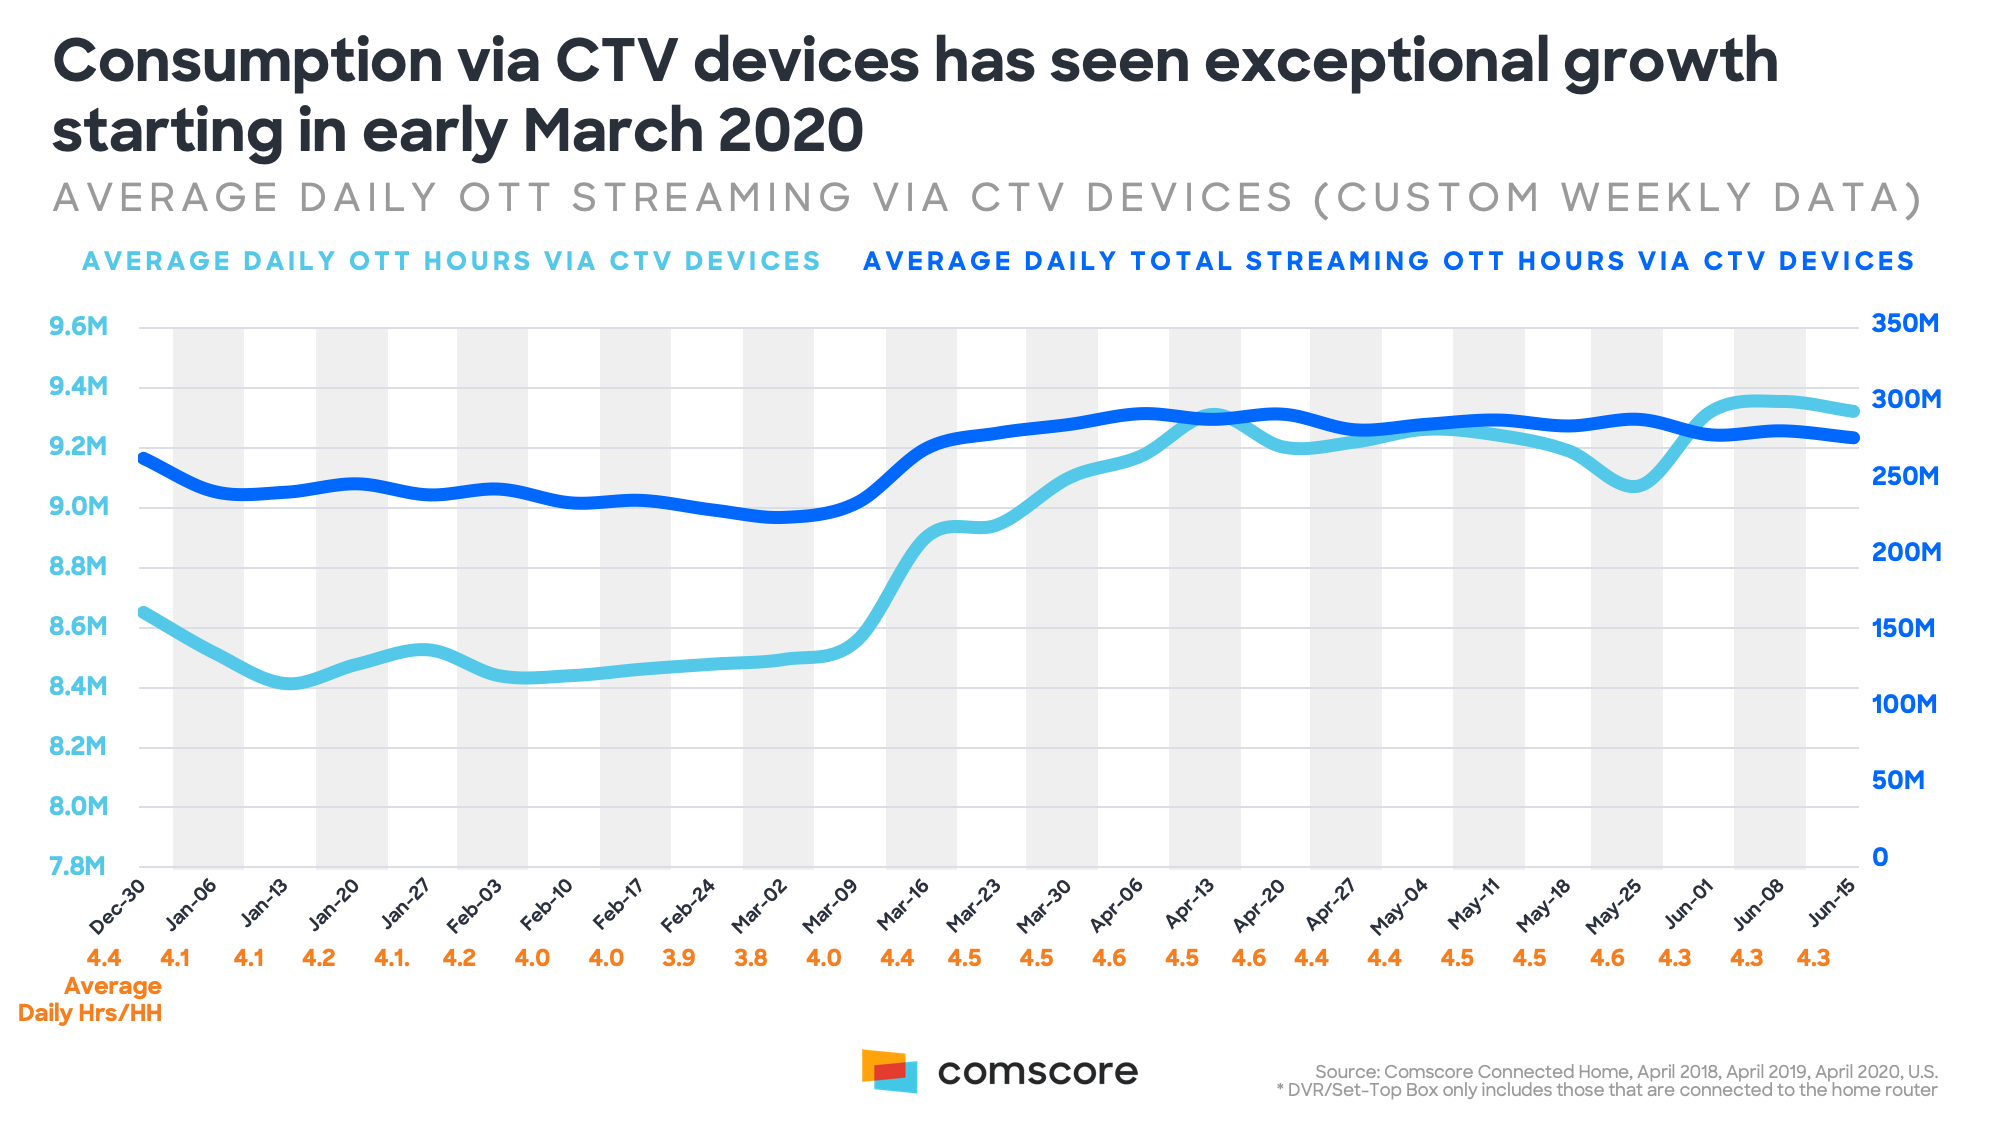 Consumption via CTV Devices Has Seen Exceptional Growth